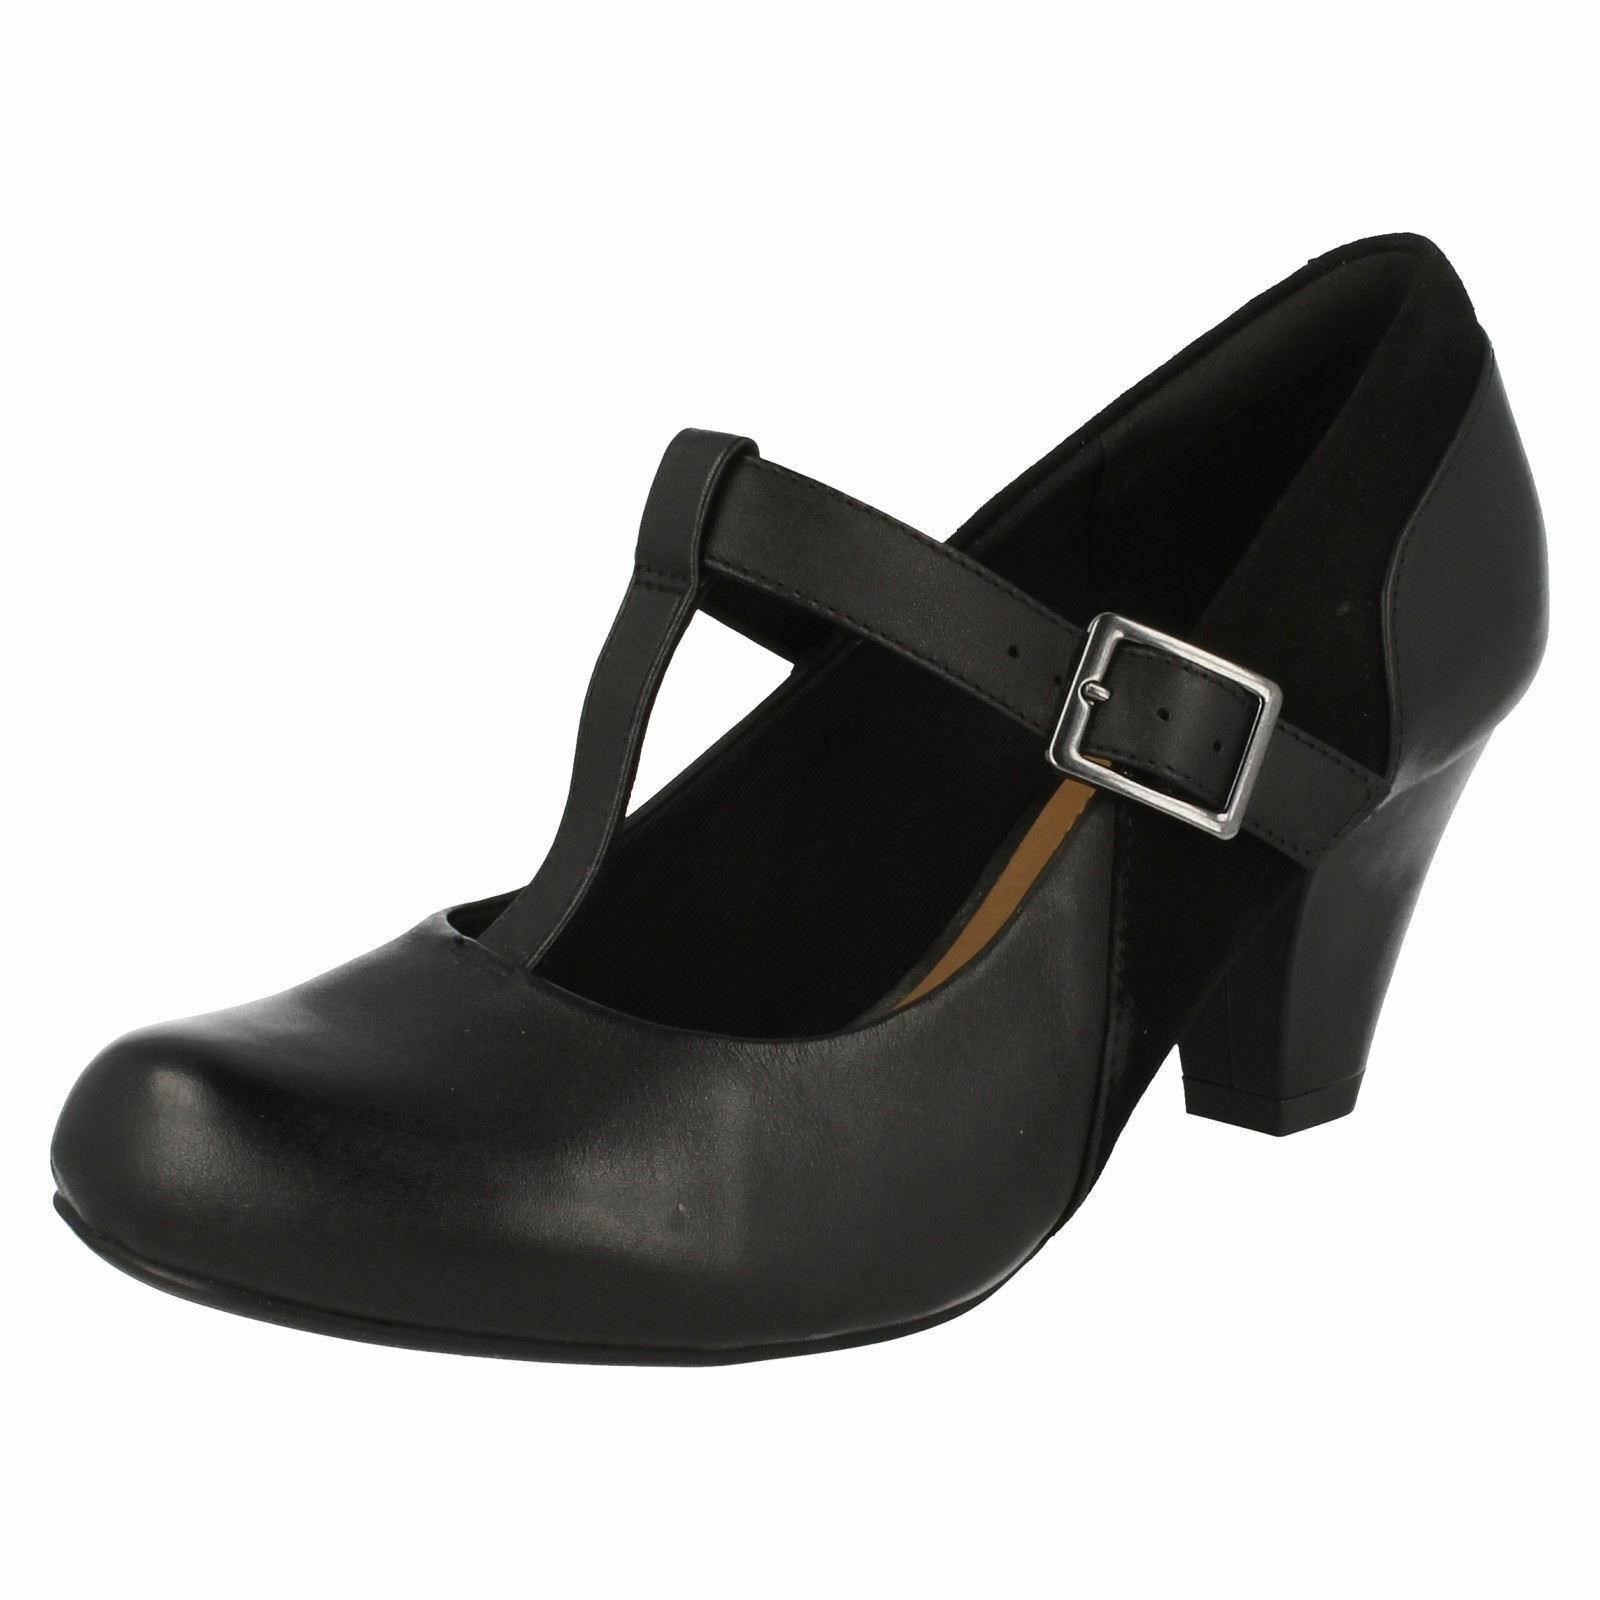 Clarks' Coolest Lass' da Donne, in pelle Nera T-Bar Court Schuhe Larghezza D